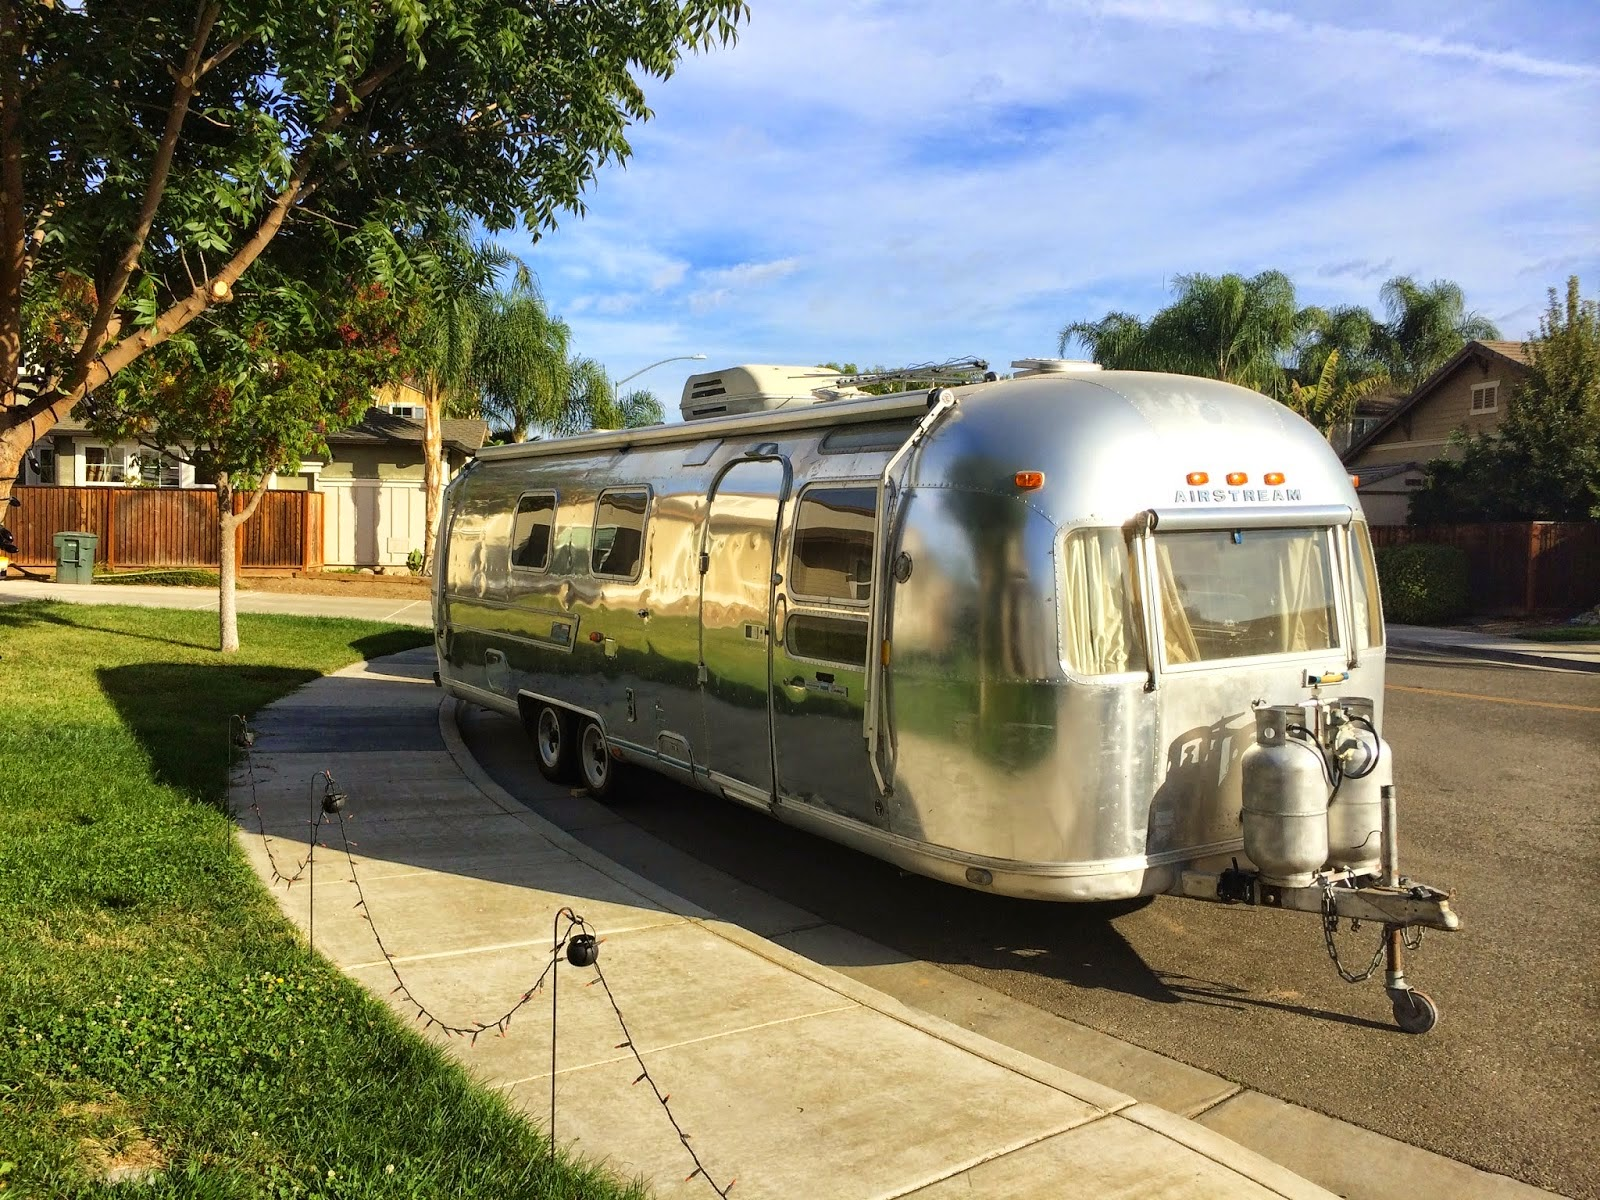 Meet Annie the Airstream, shared by The Adventures of Jolly & Happy